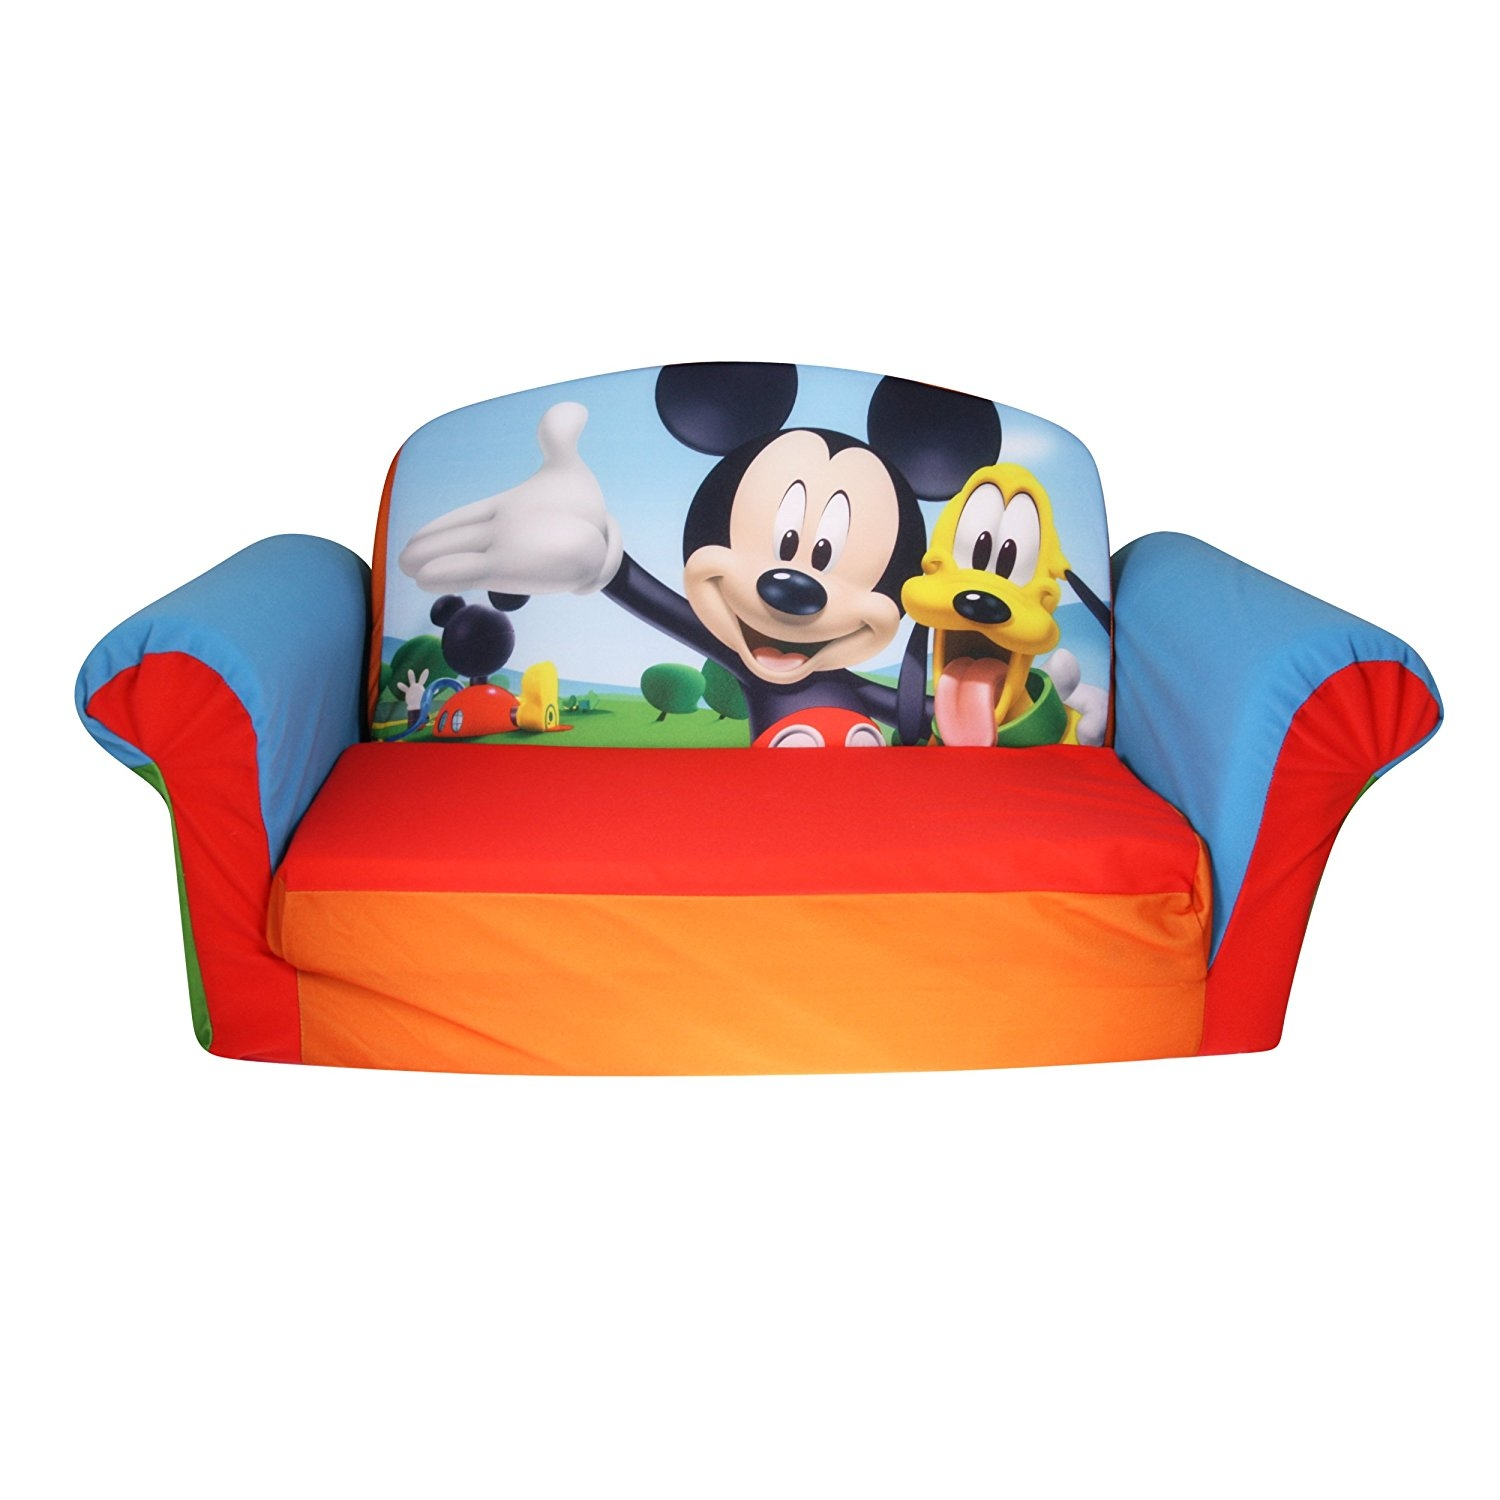 Amazon Marshmallow Furniture Childrens 2 In 1 Flip Open Intended For Disney Sofa Chairs (Image 2 of 15)